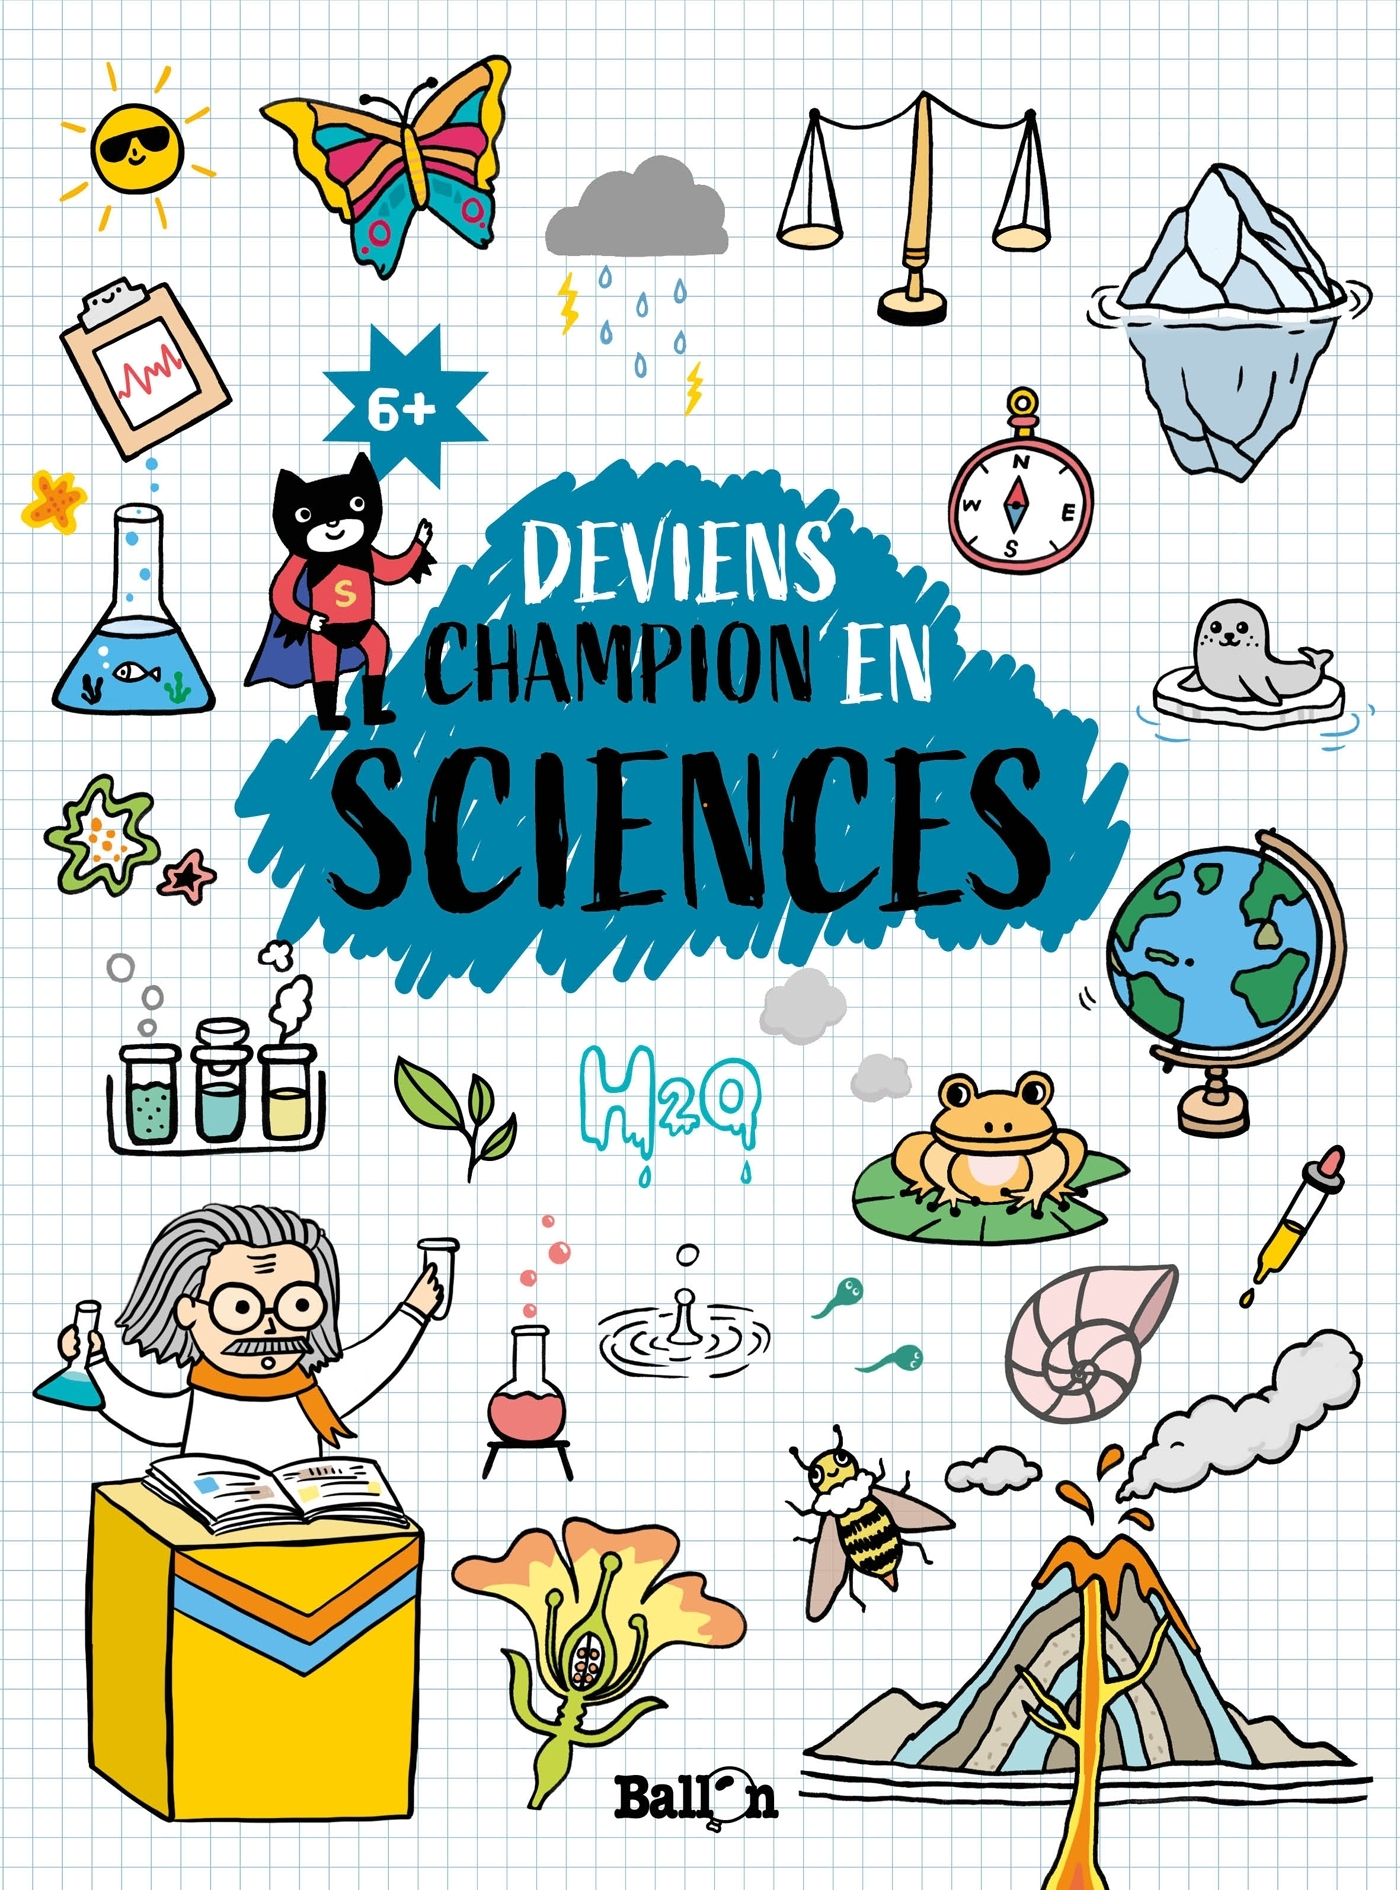 STIM - DEVIENS CHAMPION EN SCIENCES 6+